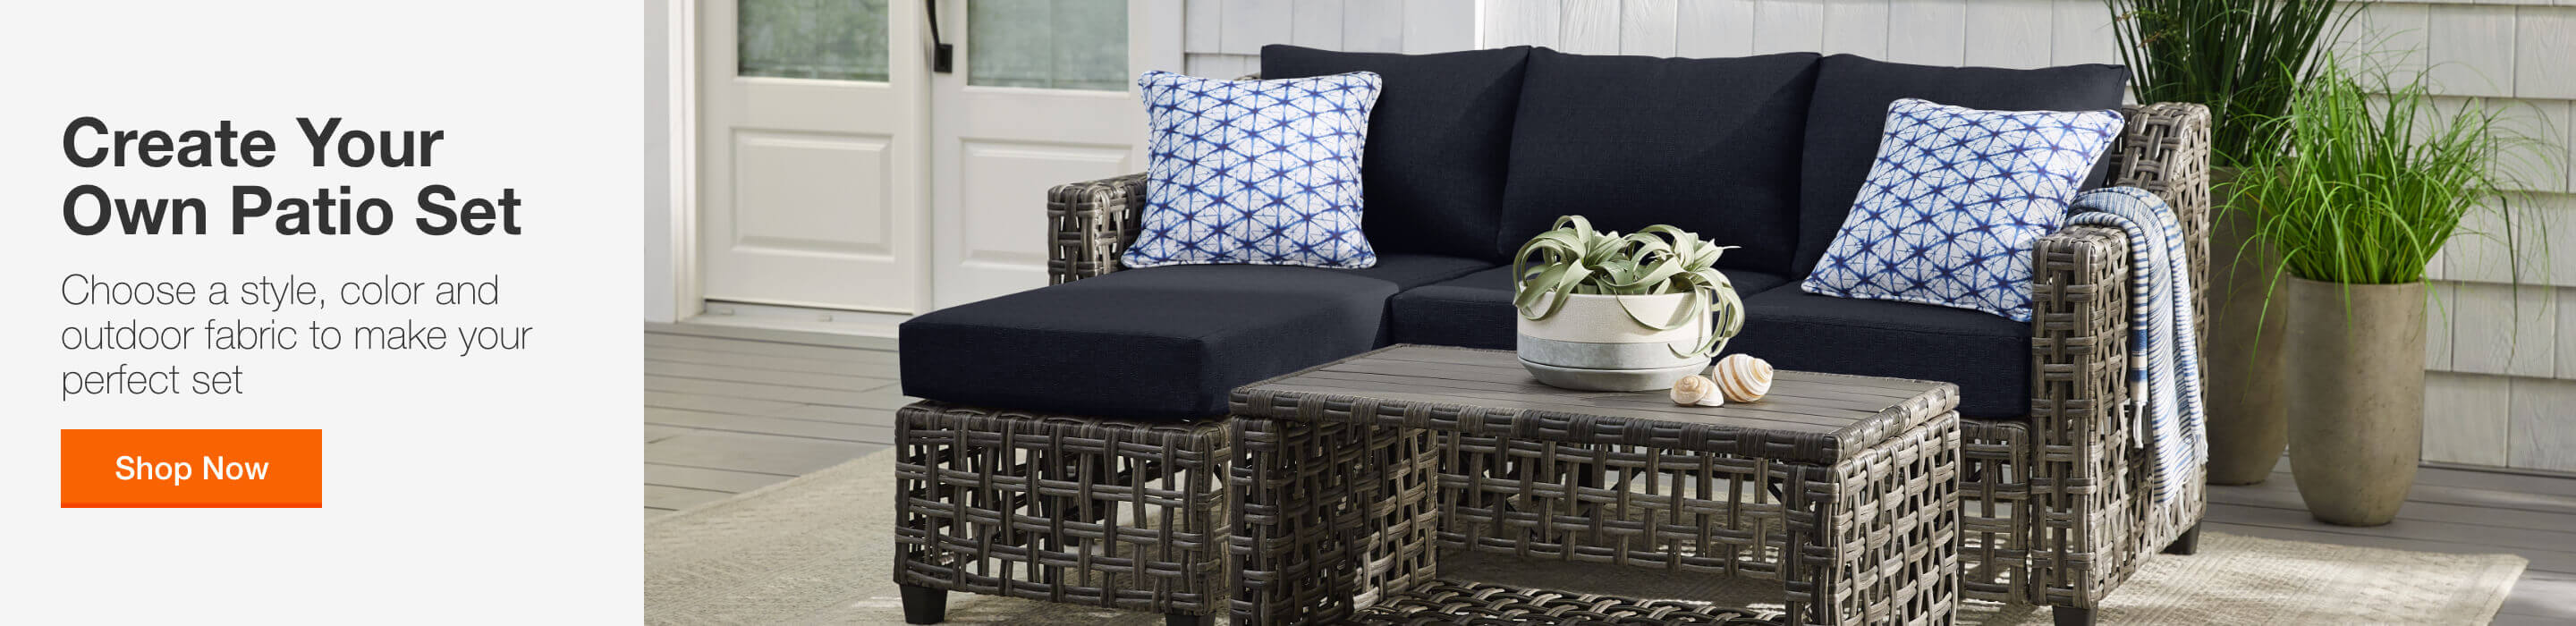 CREATE YOUR OWN PATIO SET - Choose a style, color and outdoor fabric to make your perfect set. Shop Now